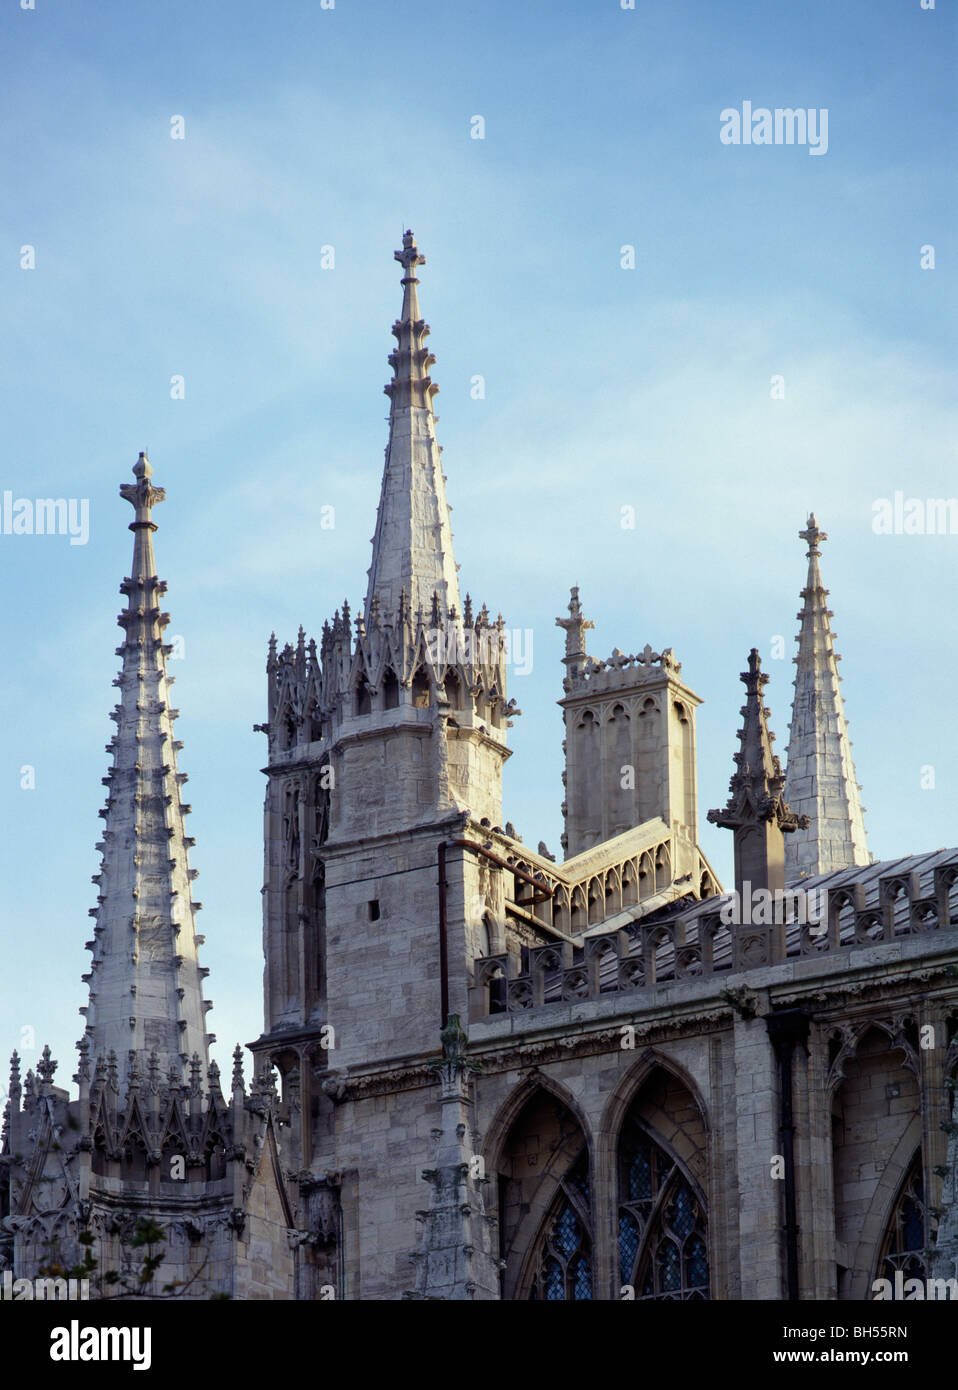 York Minster elaborate gable end pinnacles of east end. Late14-15th century - Stock Image